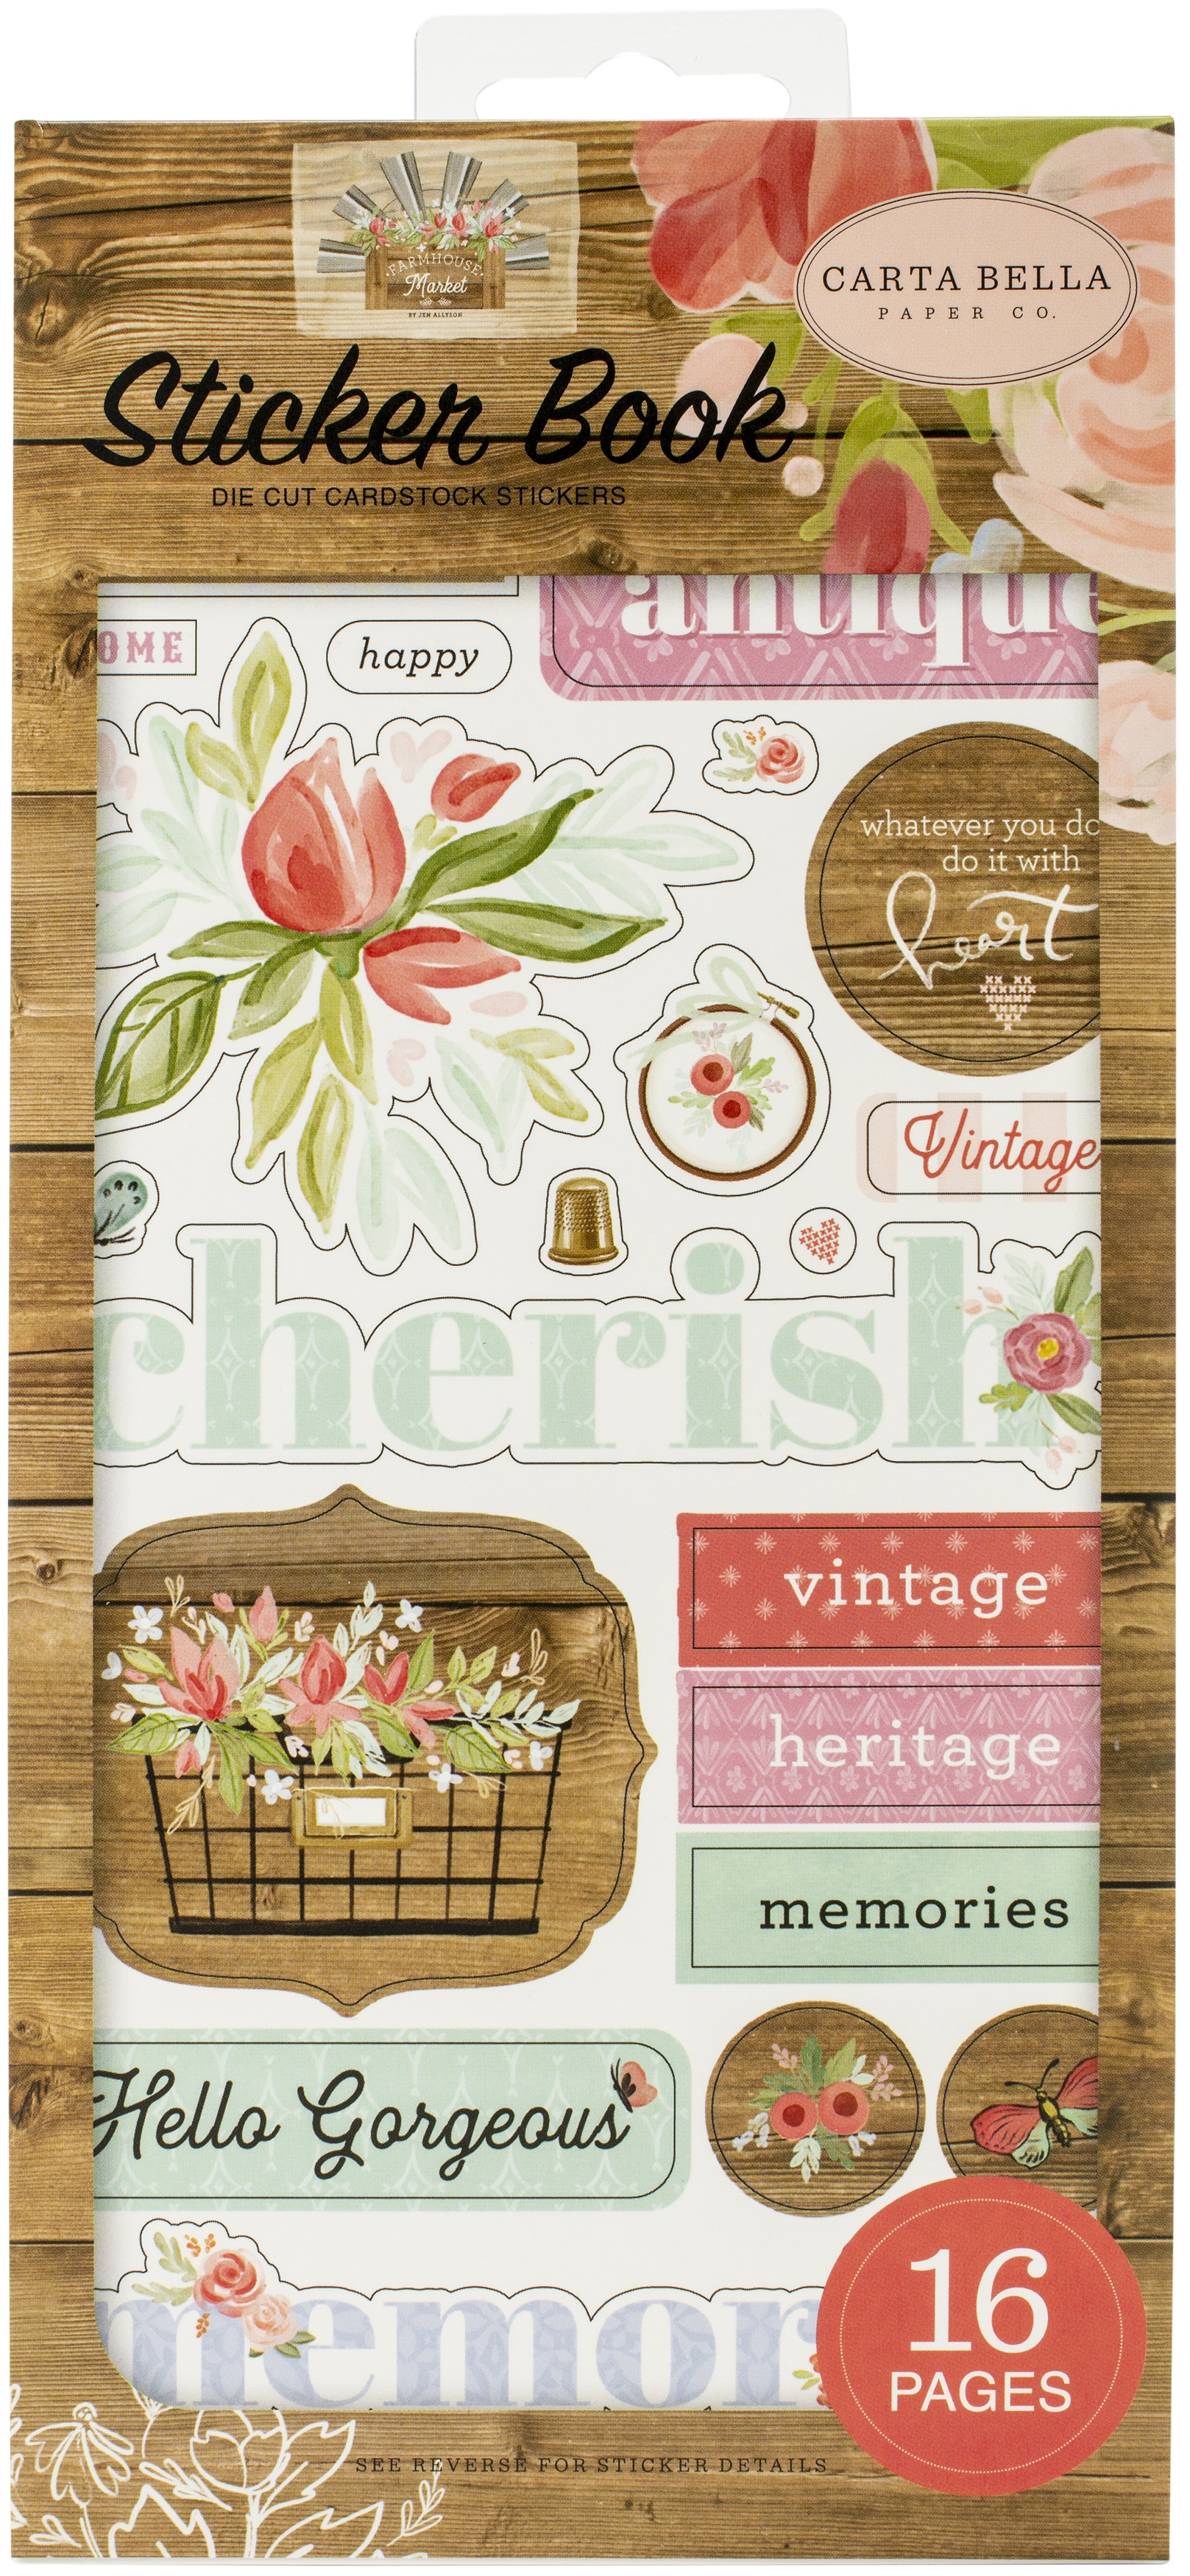 Farmhouse Market Sticker Book